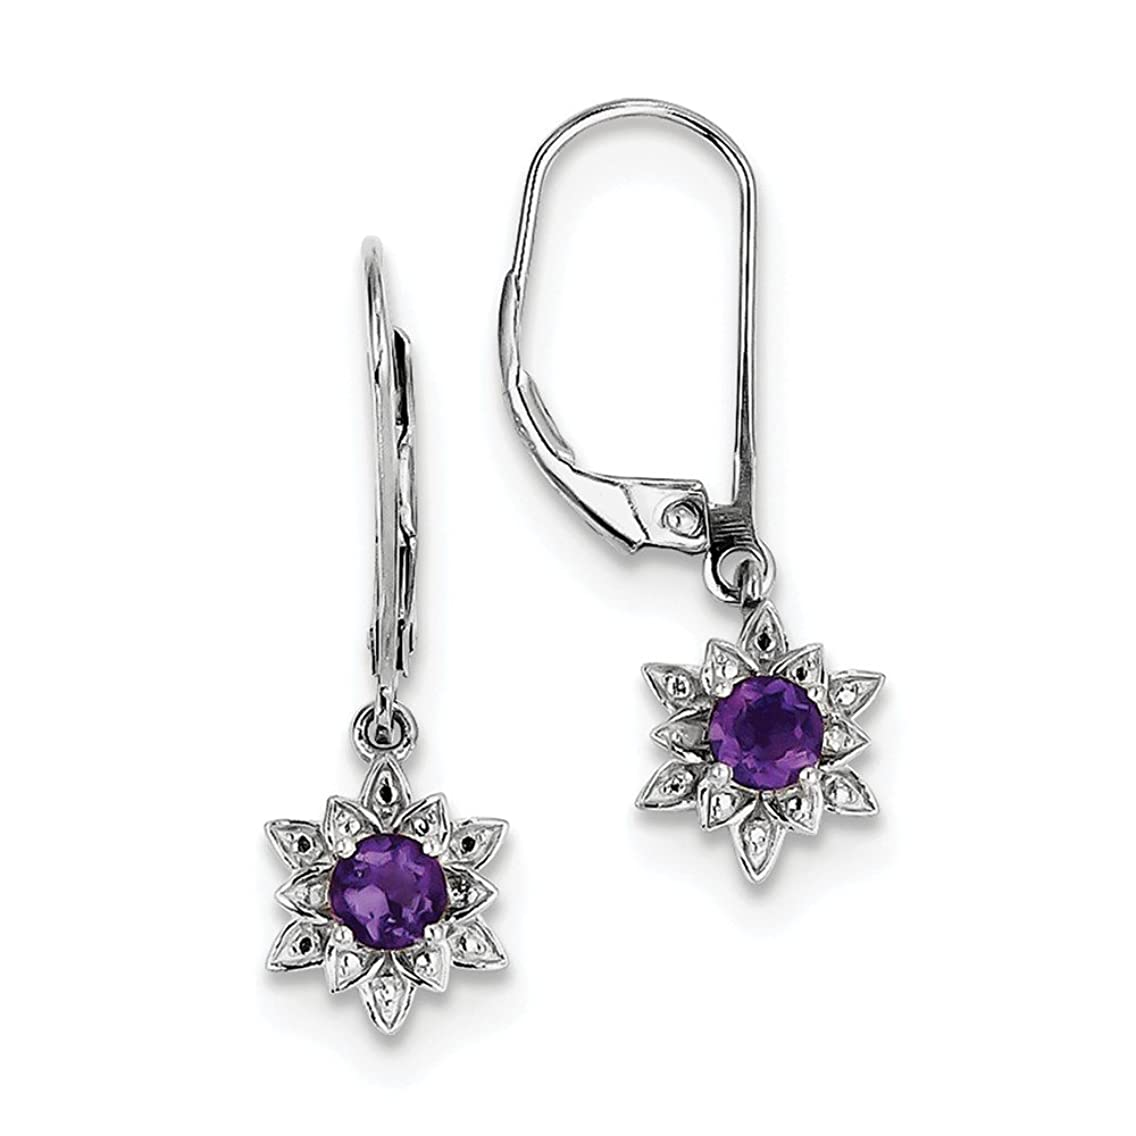 Solid .925 Sterling Silver Rhodium-plated Diamond & Amethyst Earrings 28x9mm